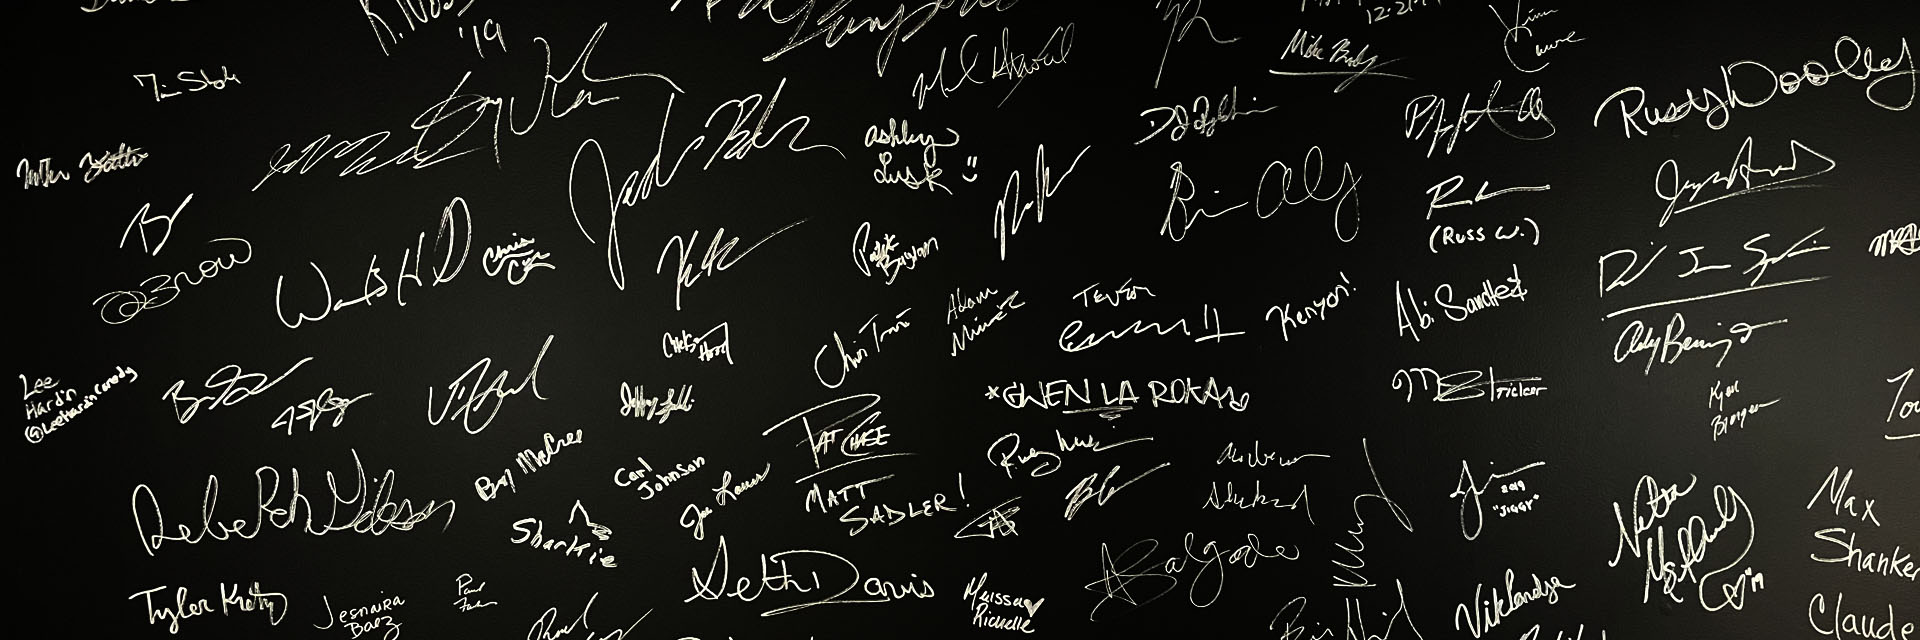 CG's wall of fame